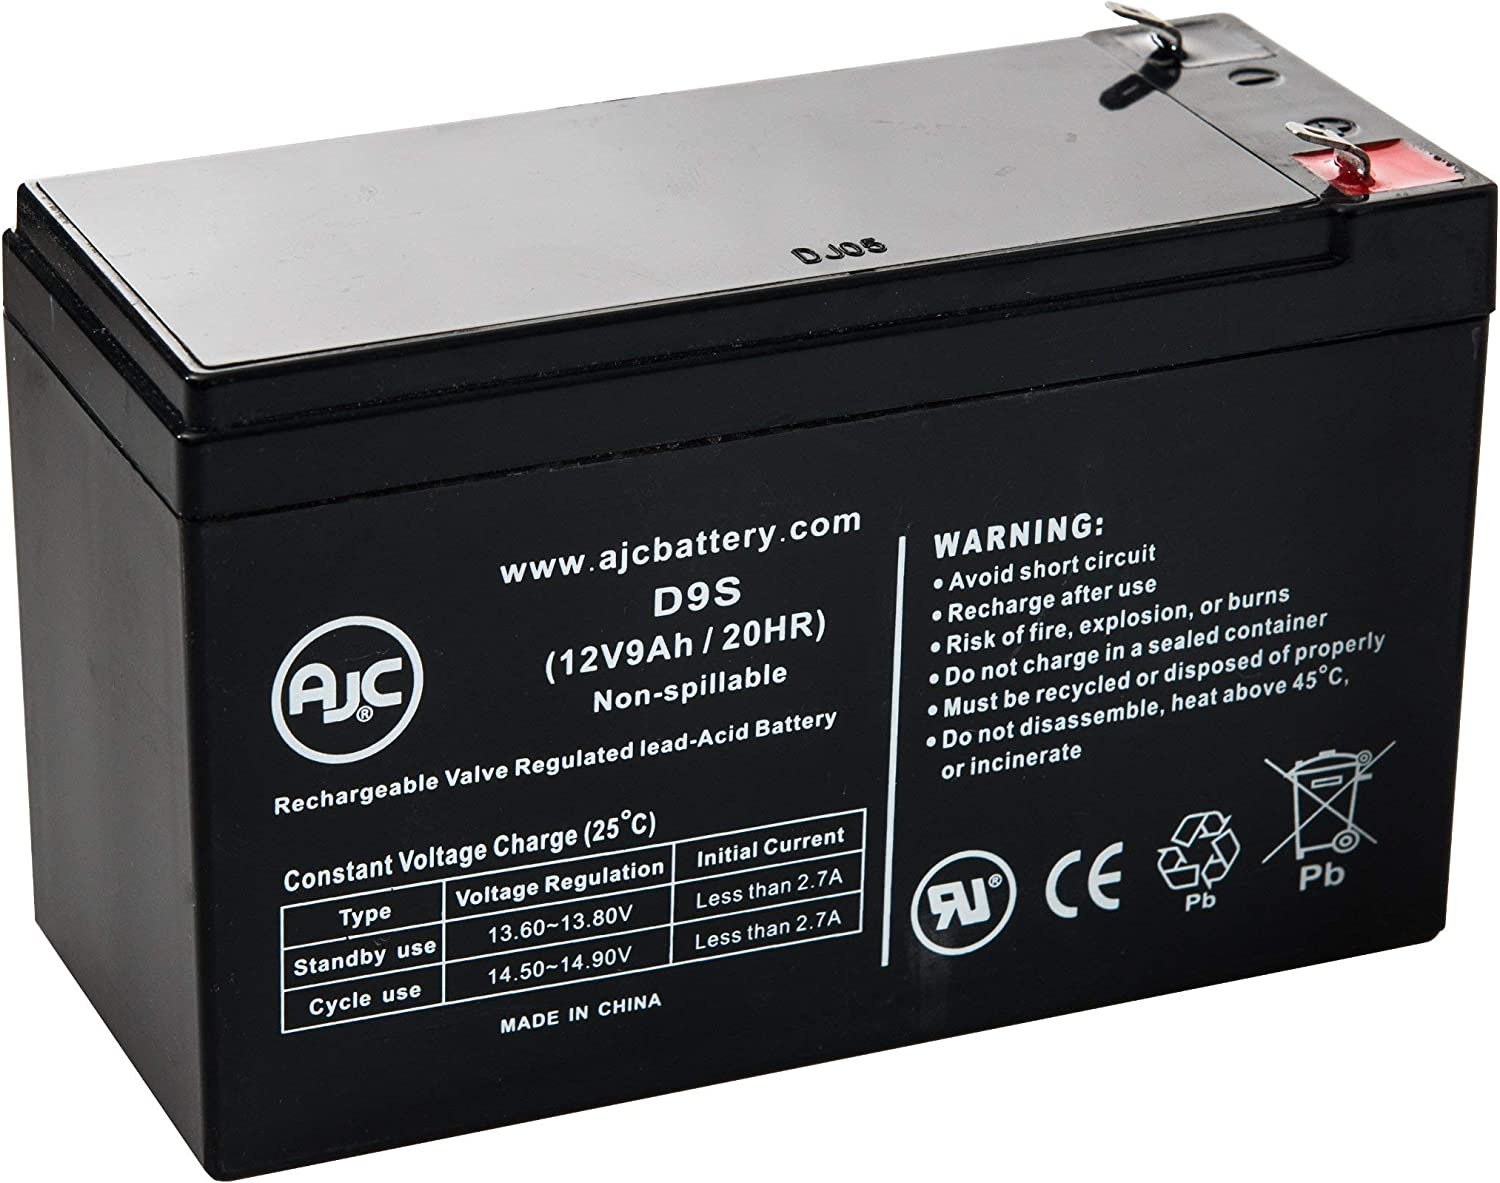 This is an AJC Brand Replacement 12V 9Ah UPS Battery Eaton PowerWare 5115 1000 VA